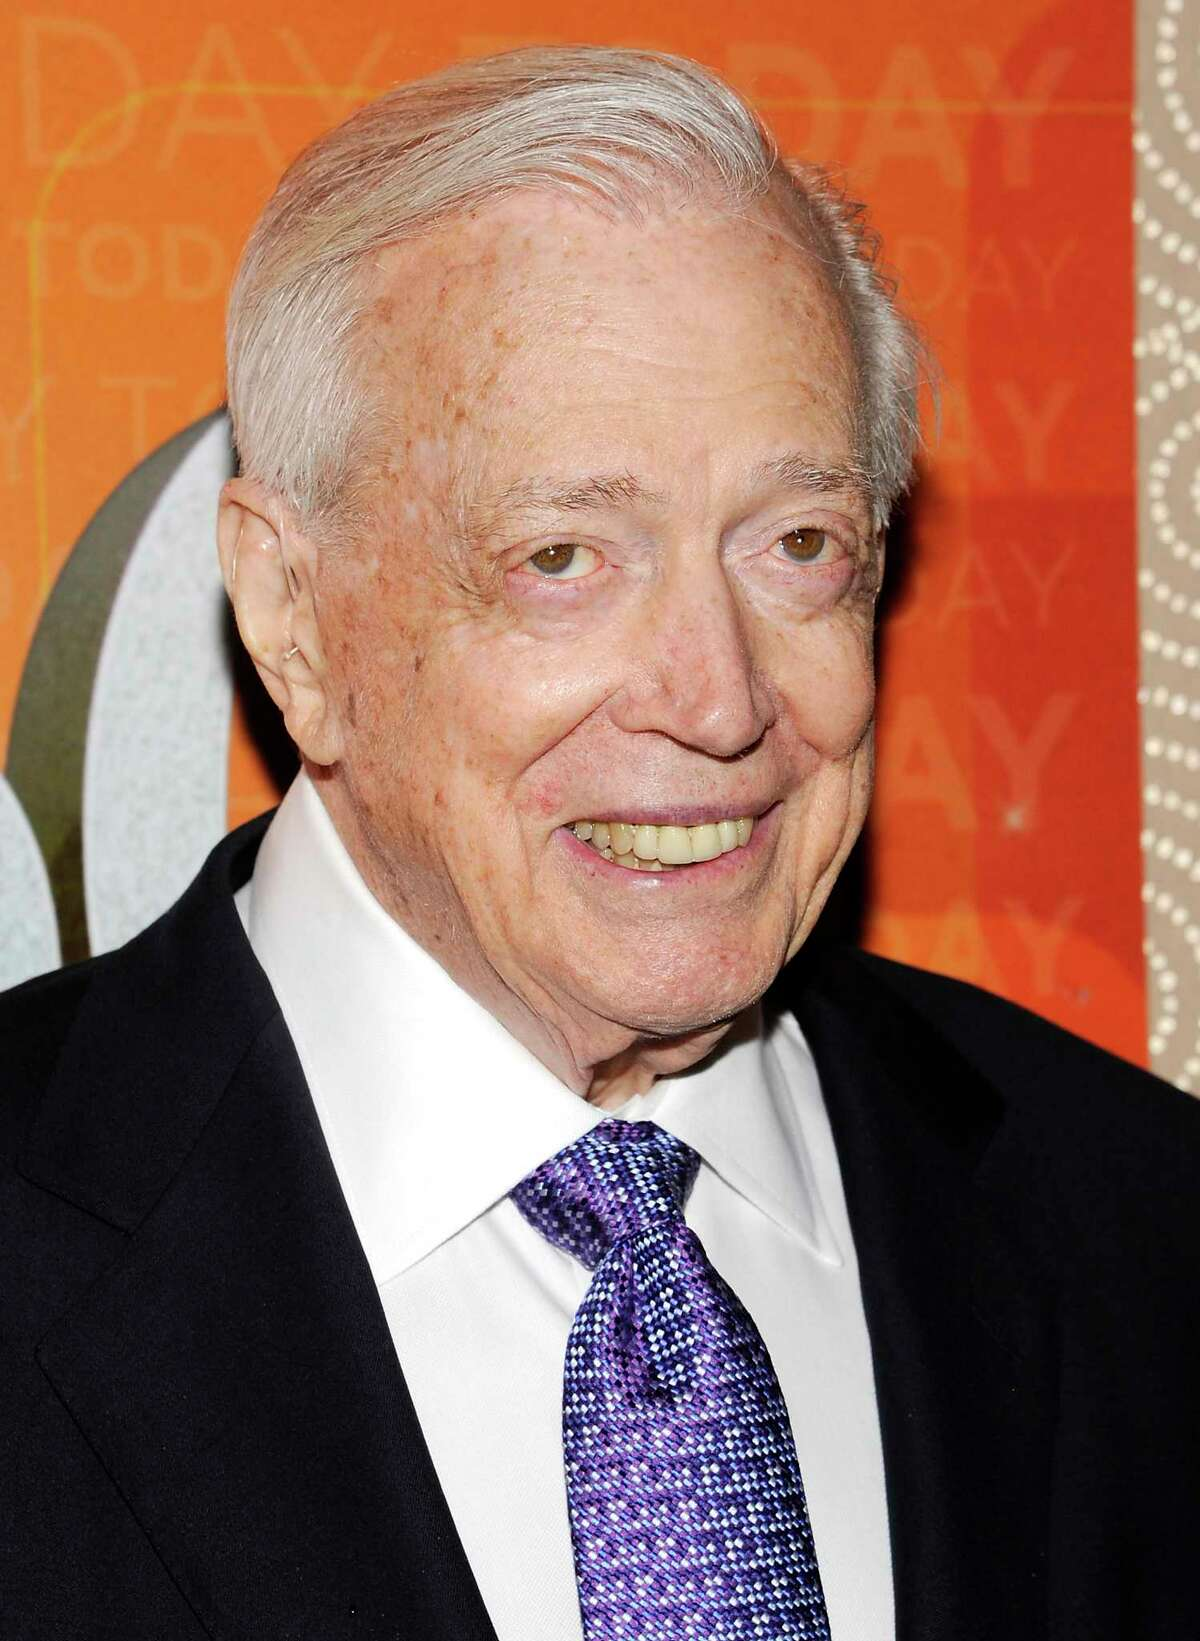 FILE - This Jan. 12, 2012 file photo shows Hugh Downs at the